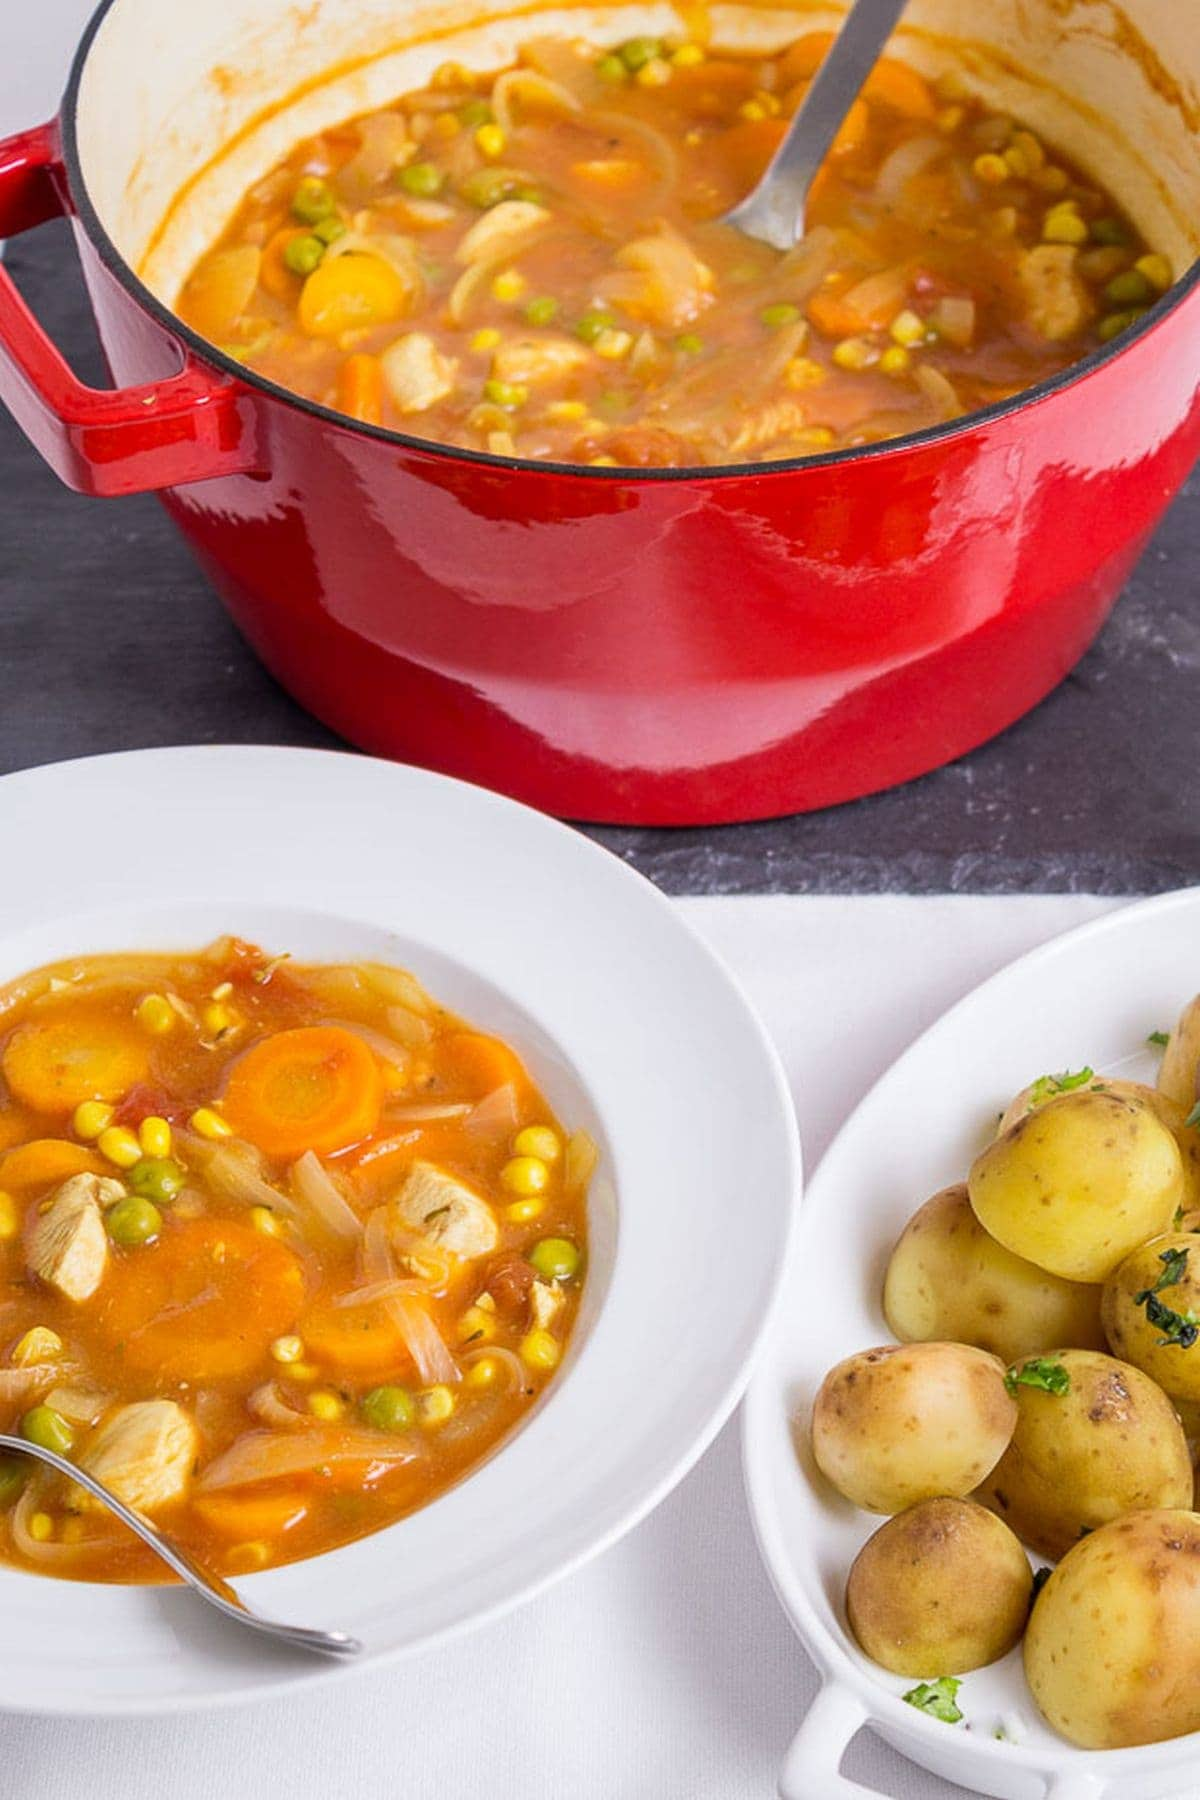 A pot of healthy chicken stew in the background with a serving of the stew and a plate of potatoes as a side at the front.